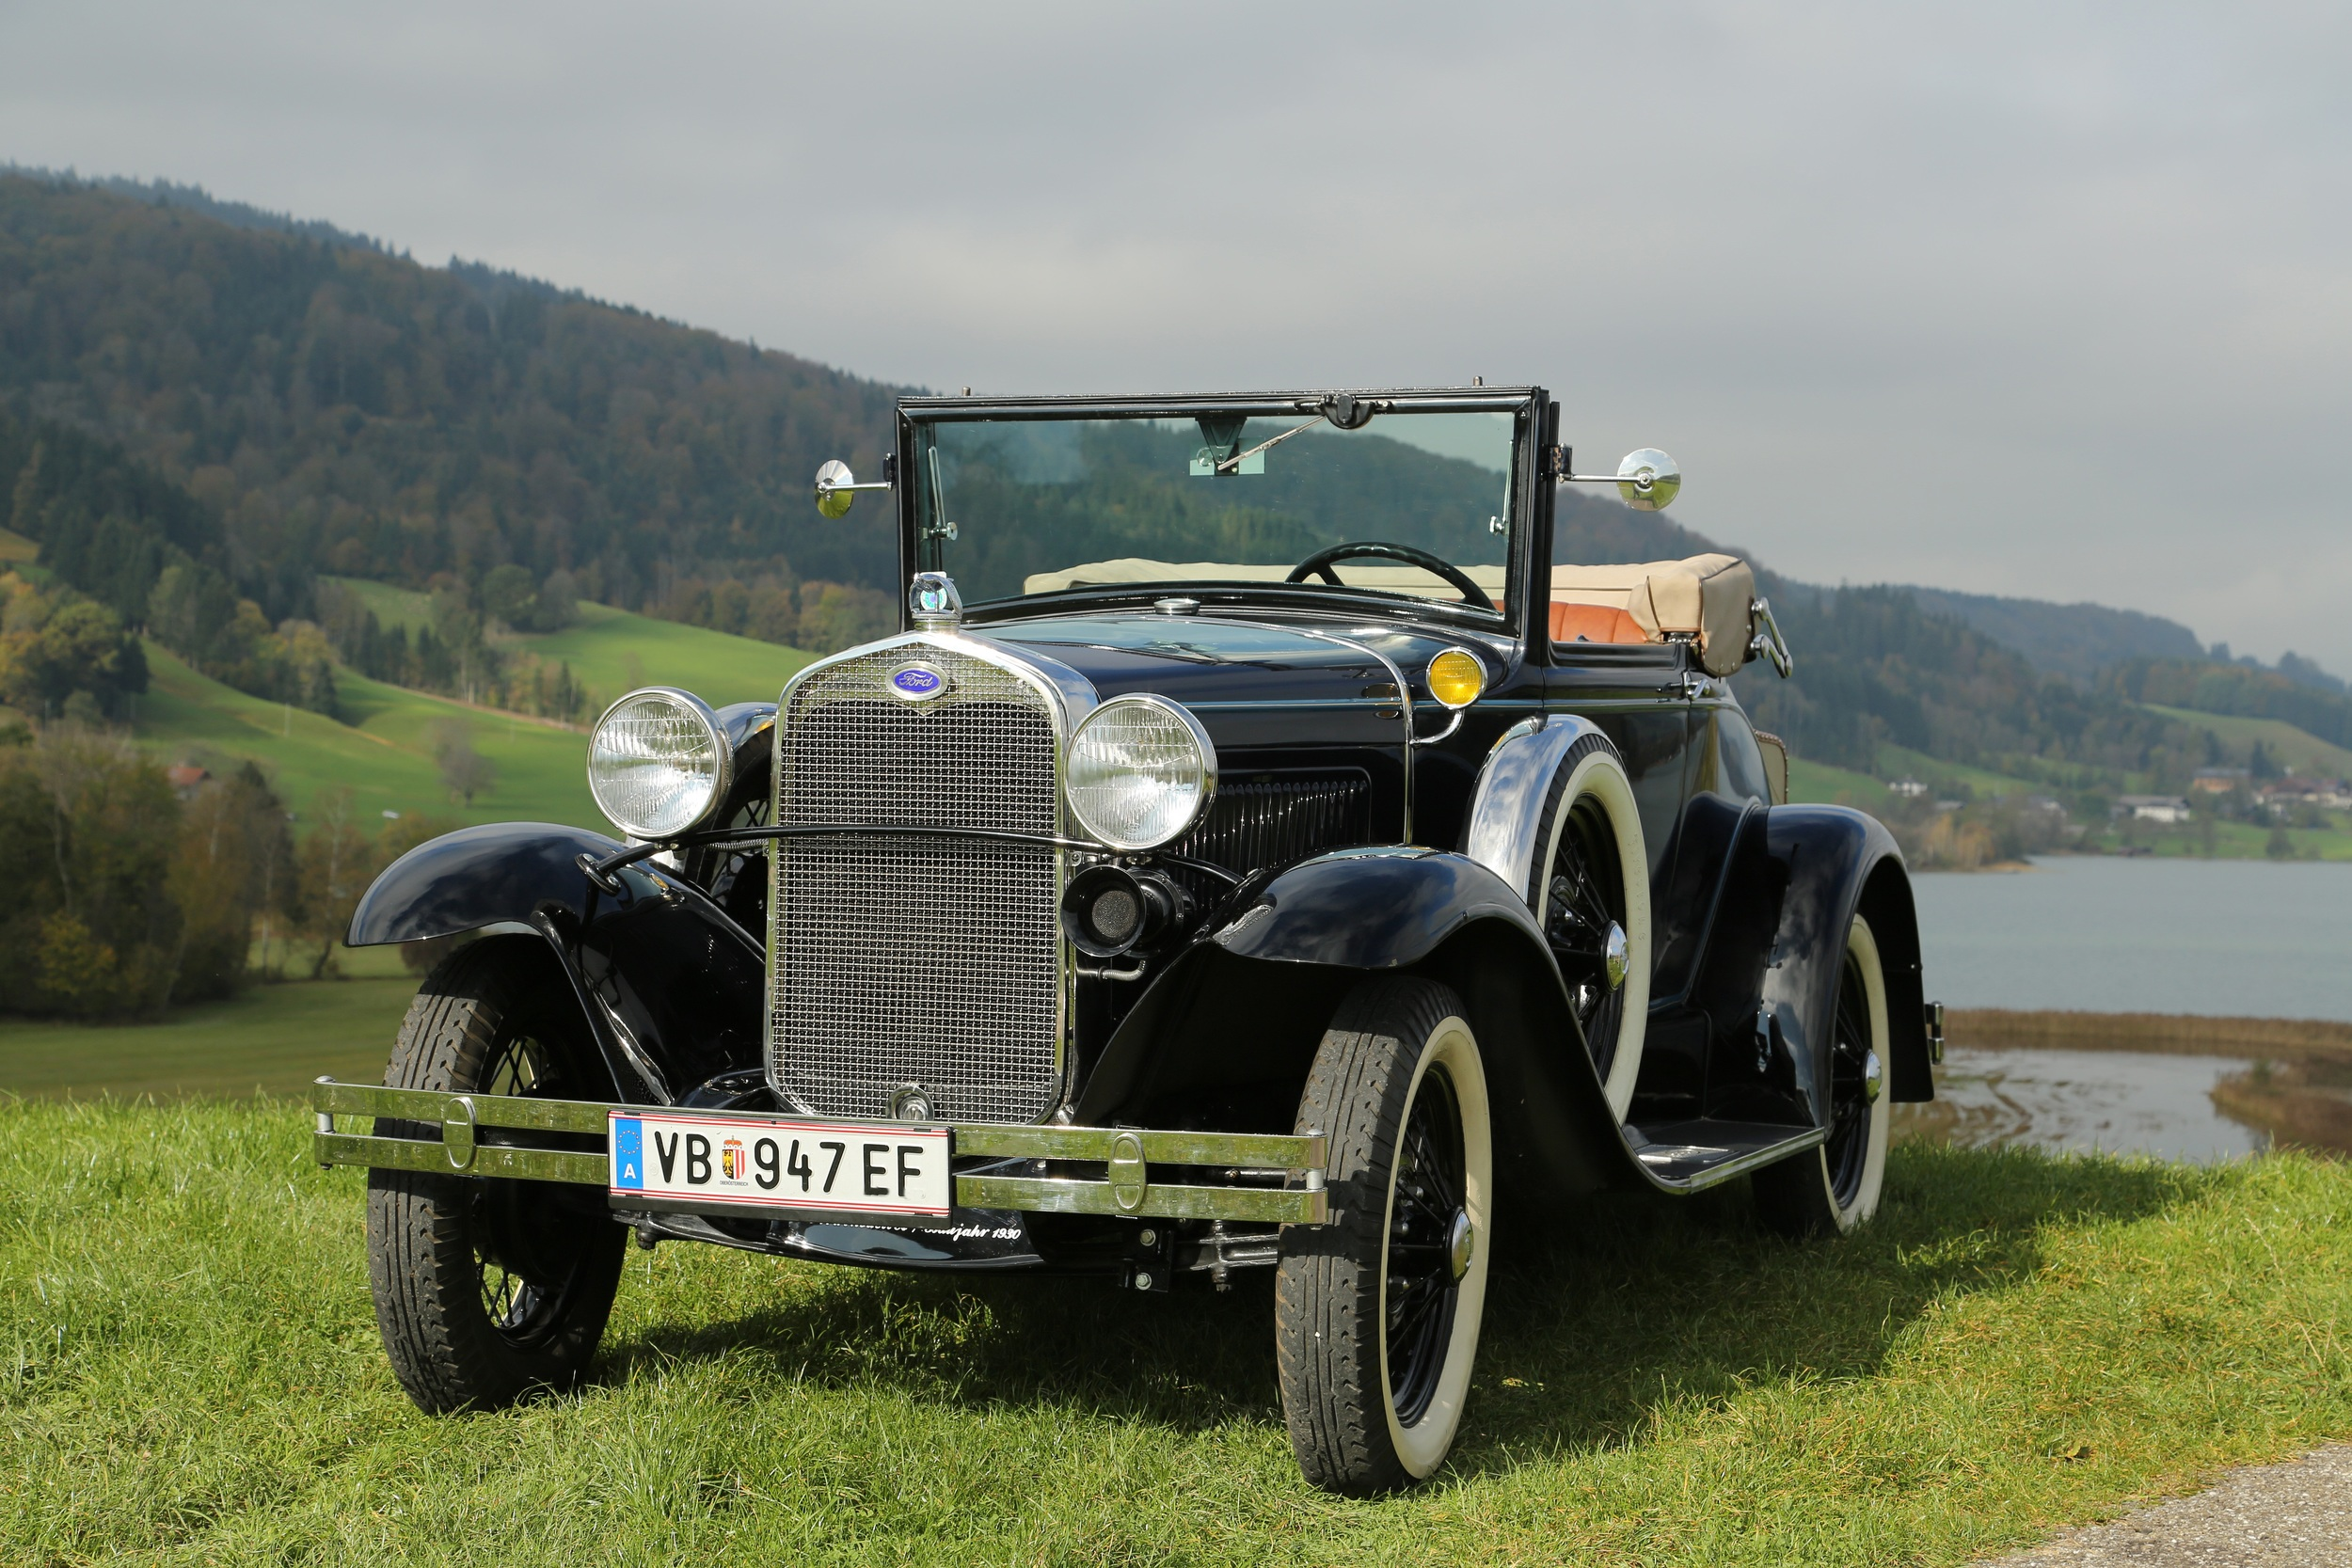 I think this is a Model T, but most stock photos are really expensive, so forgive me if it's not the exact model!